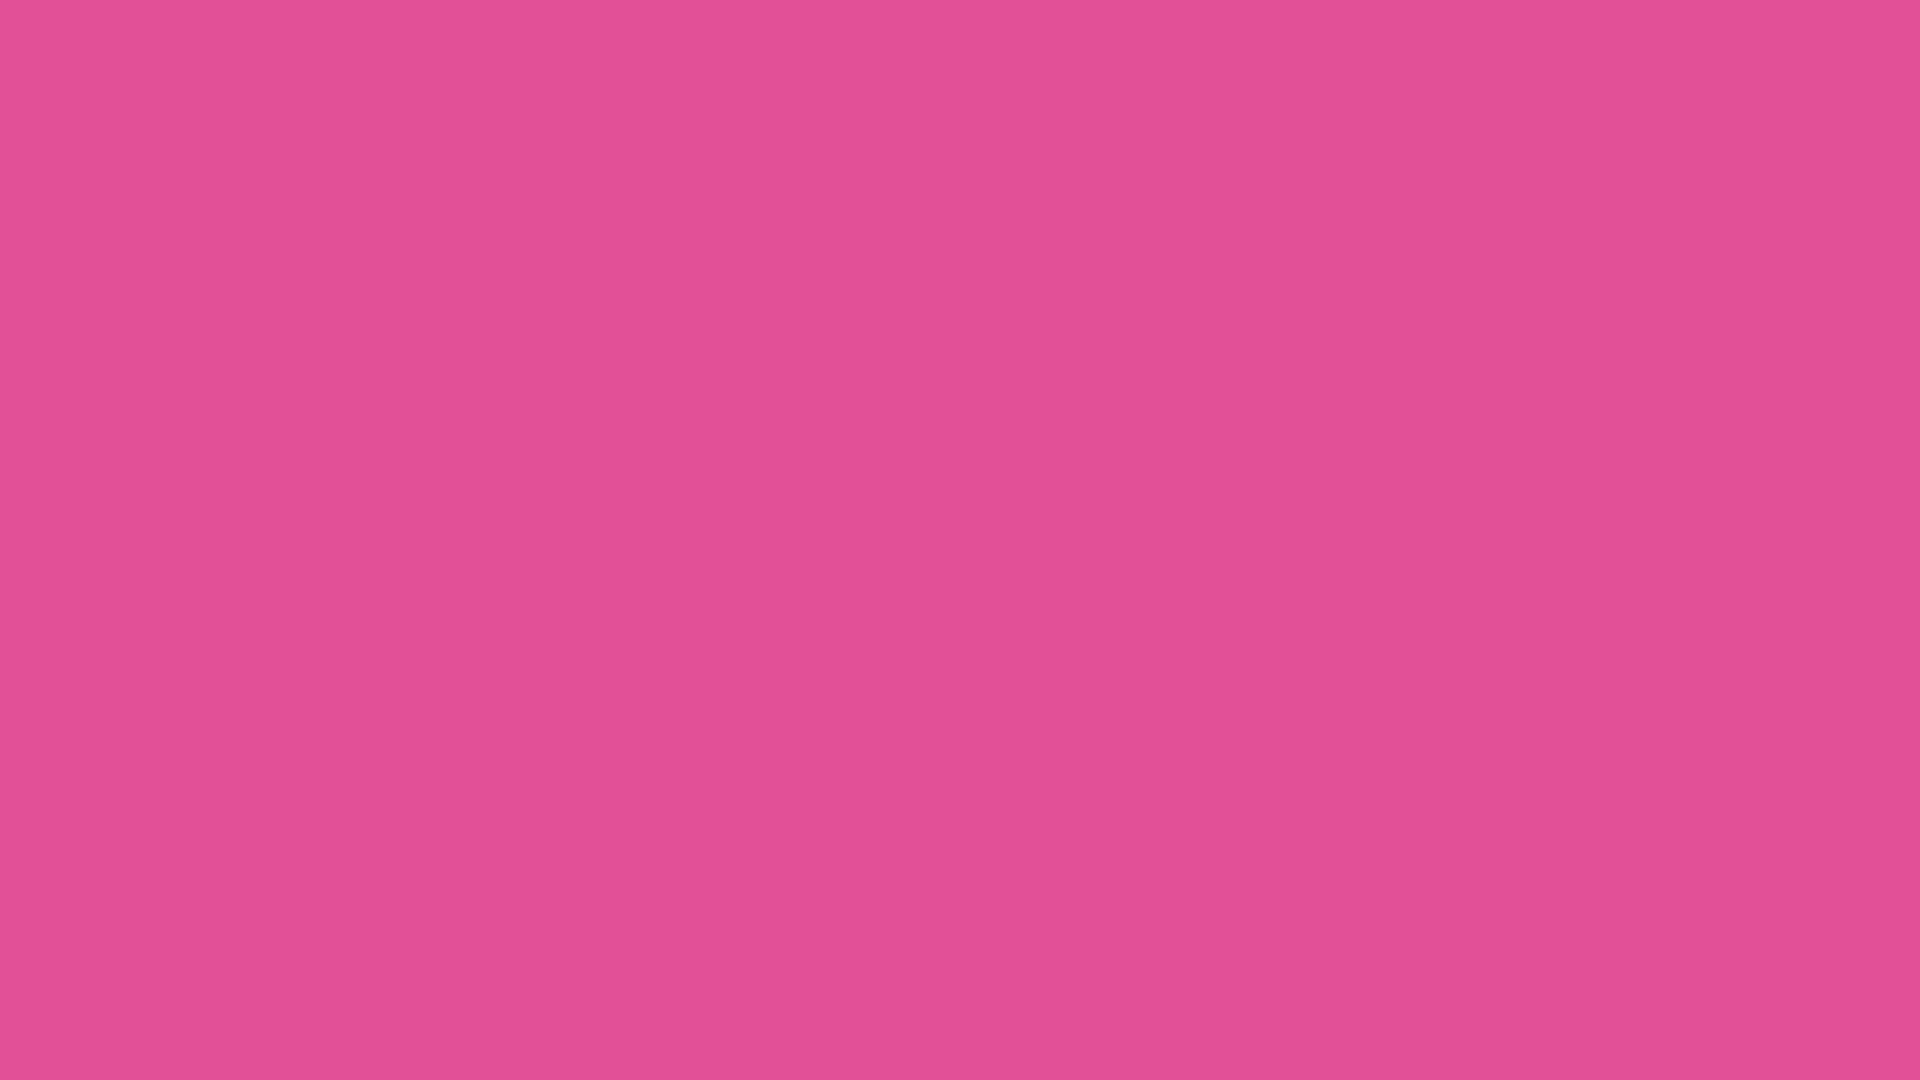 1920x1080 Raspberry Pink Solid Color Background